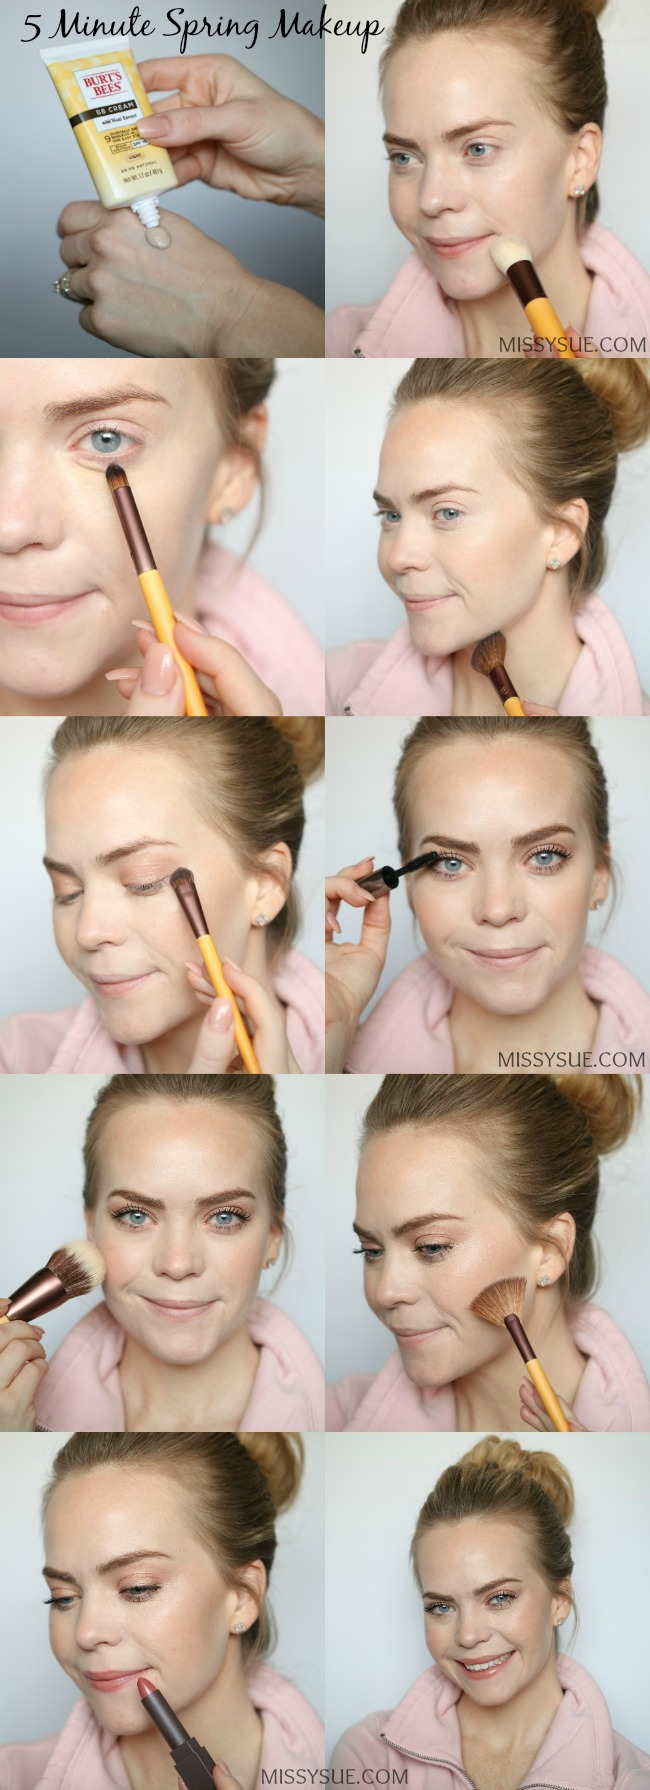 everday-makeup-with-burts-bees